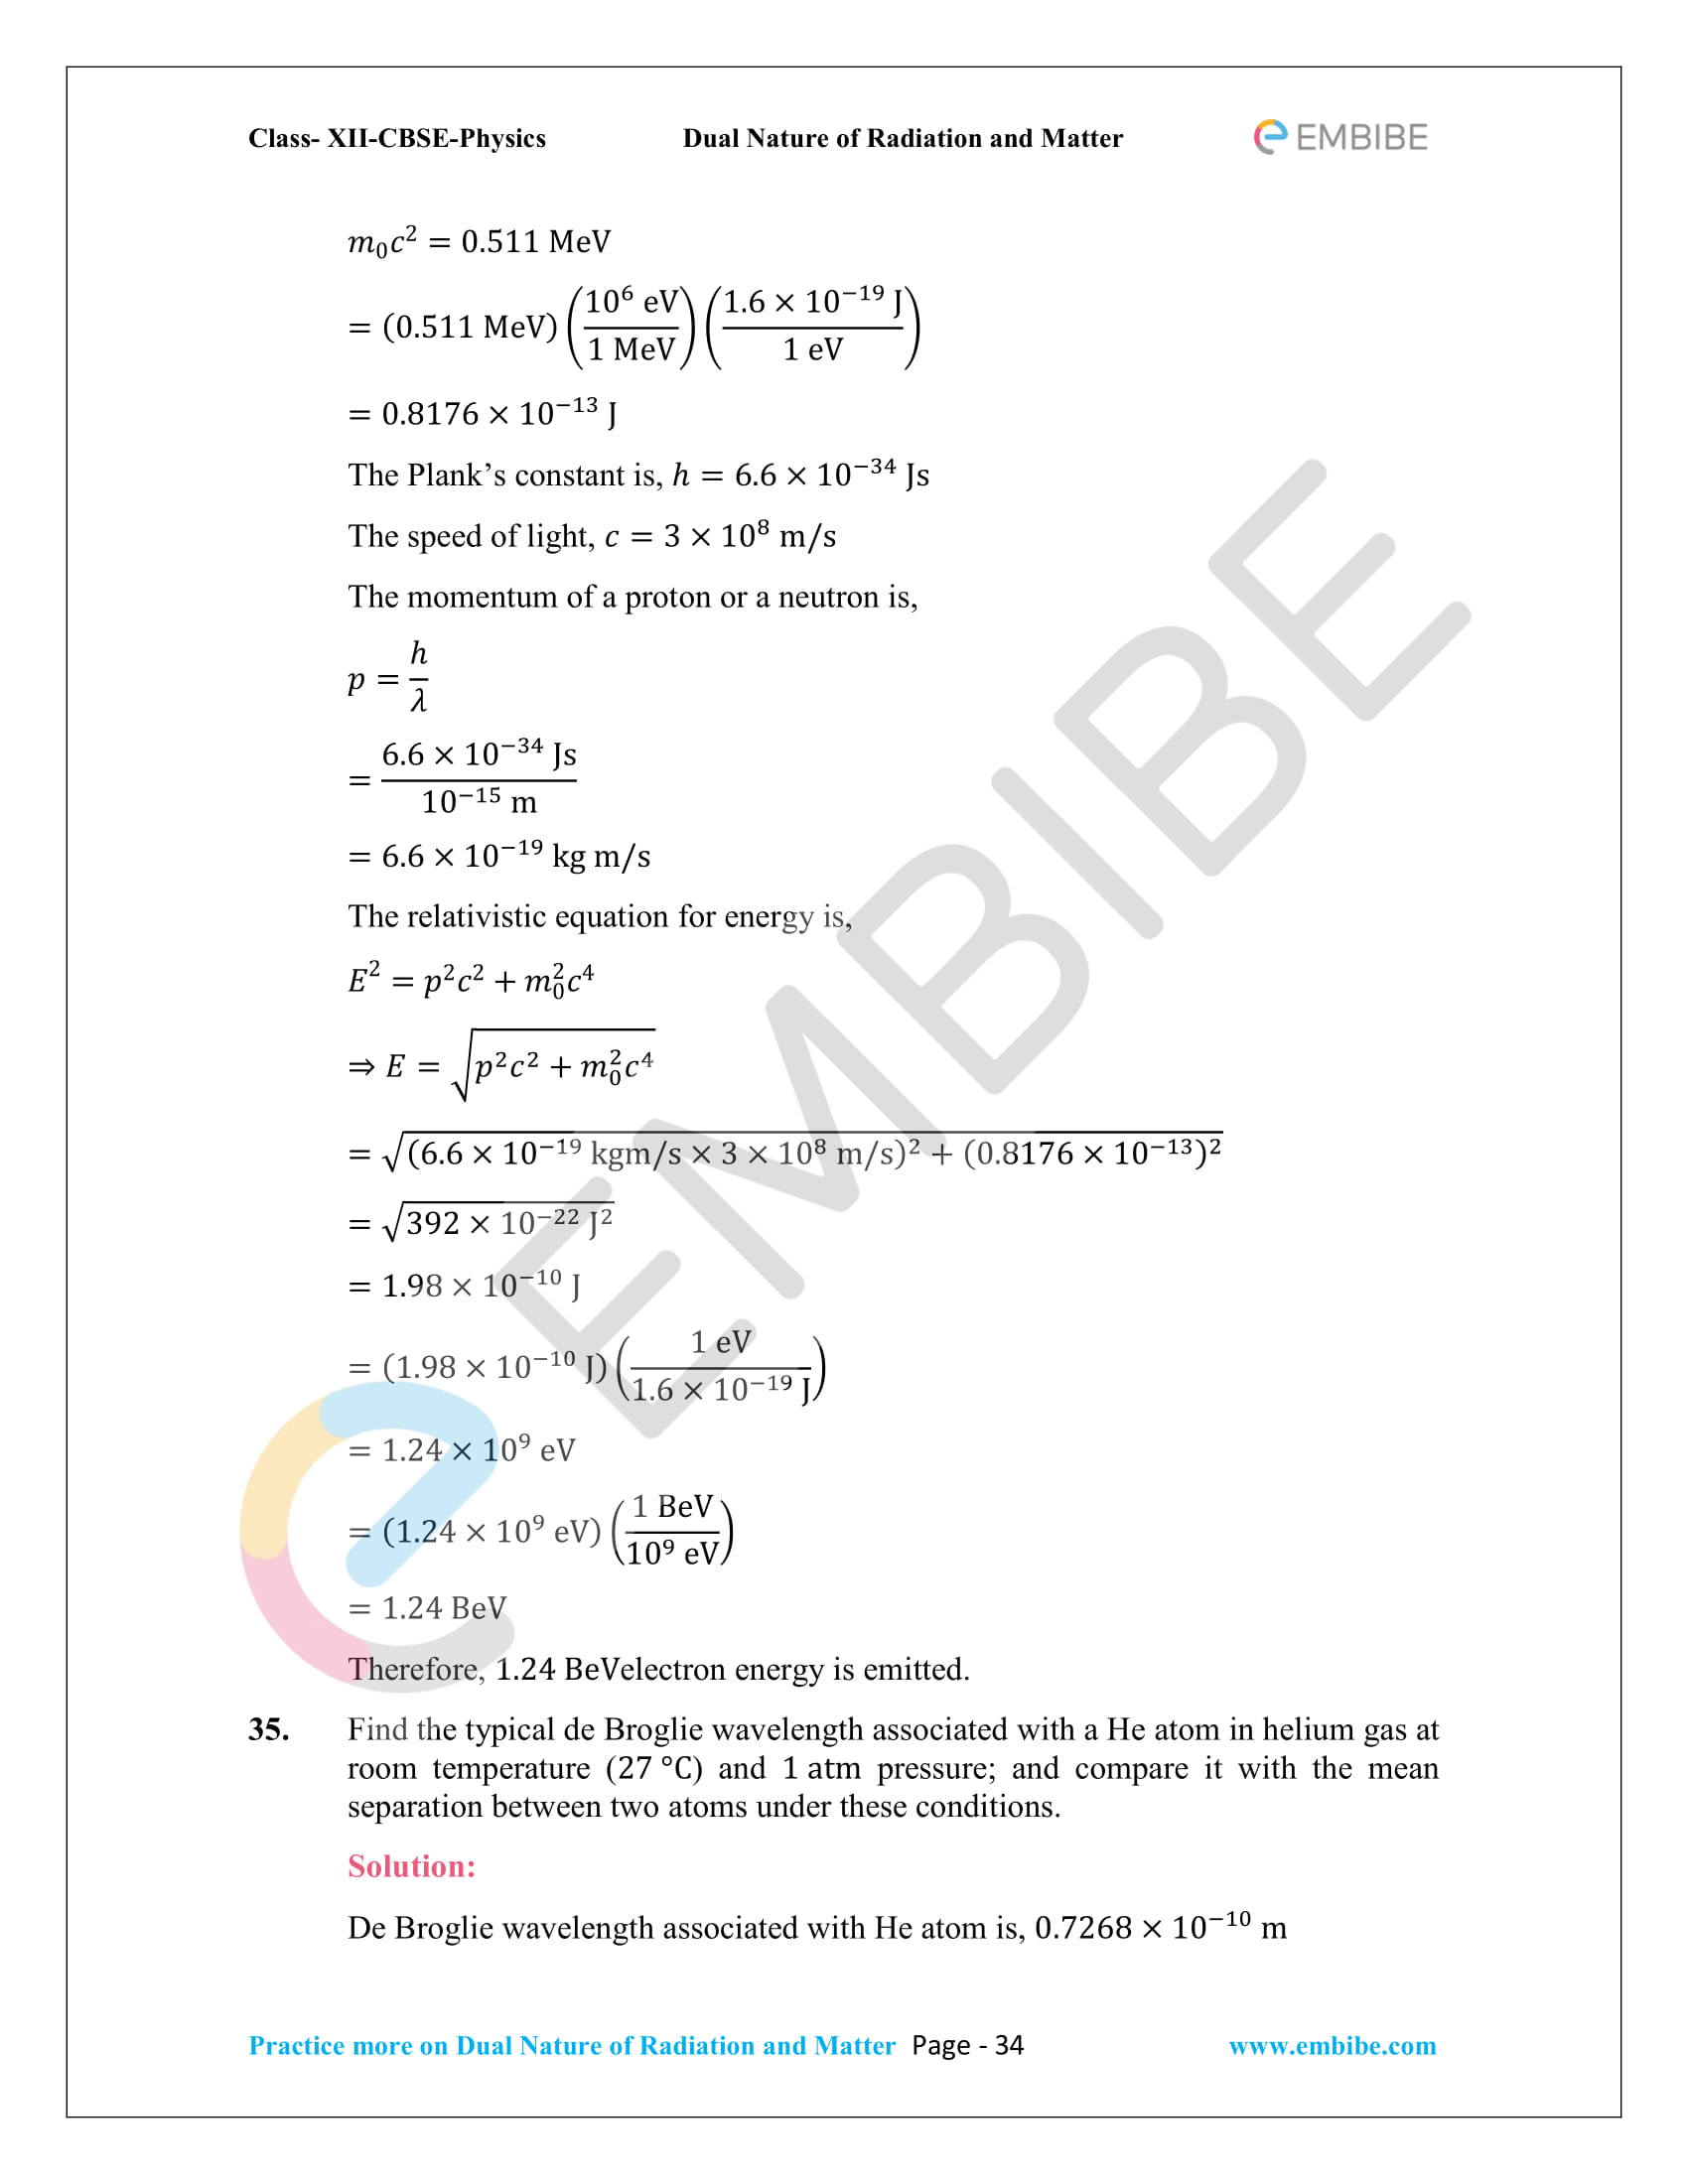 NCERT_Grade 12_Physics_Ch_11_Dual Nature of Radiation and Matter-34